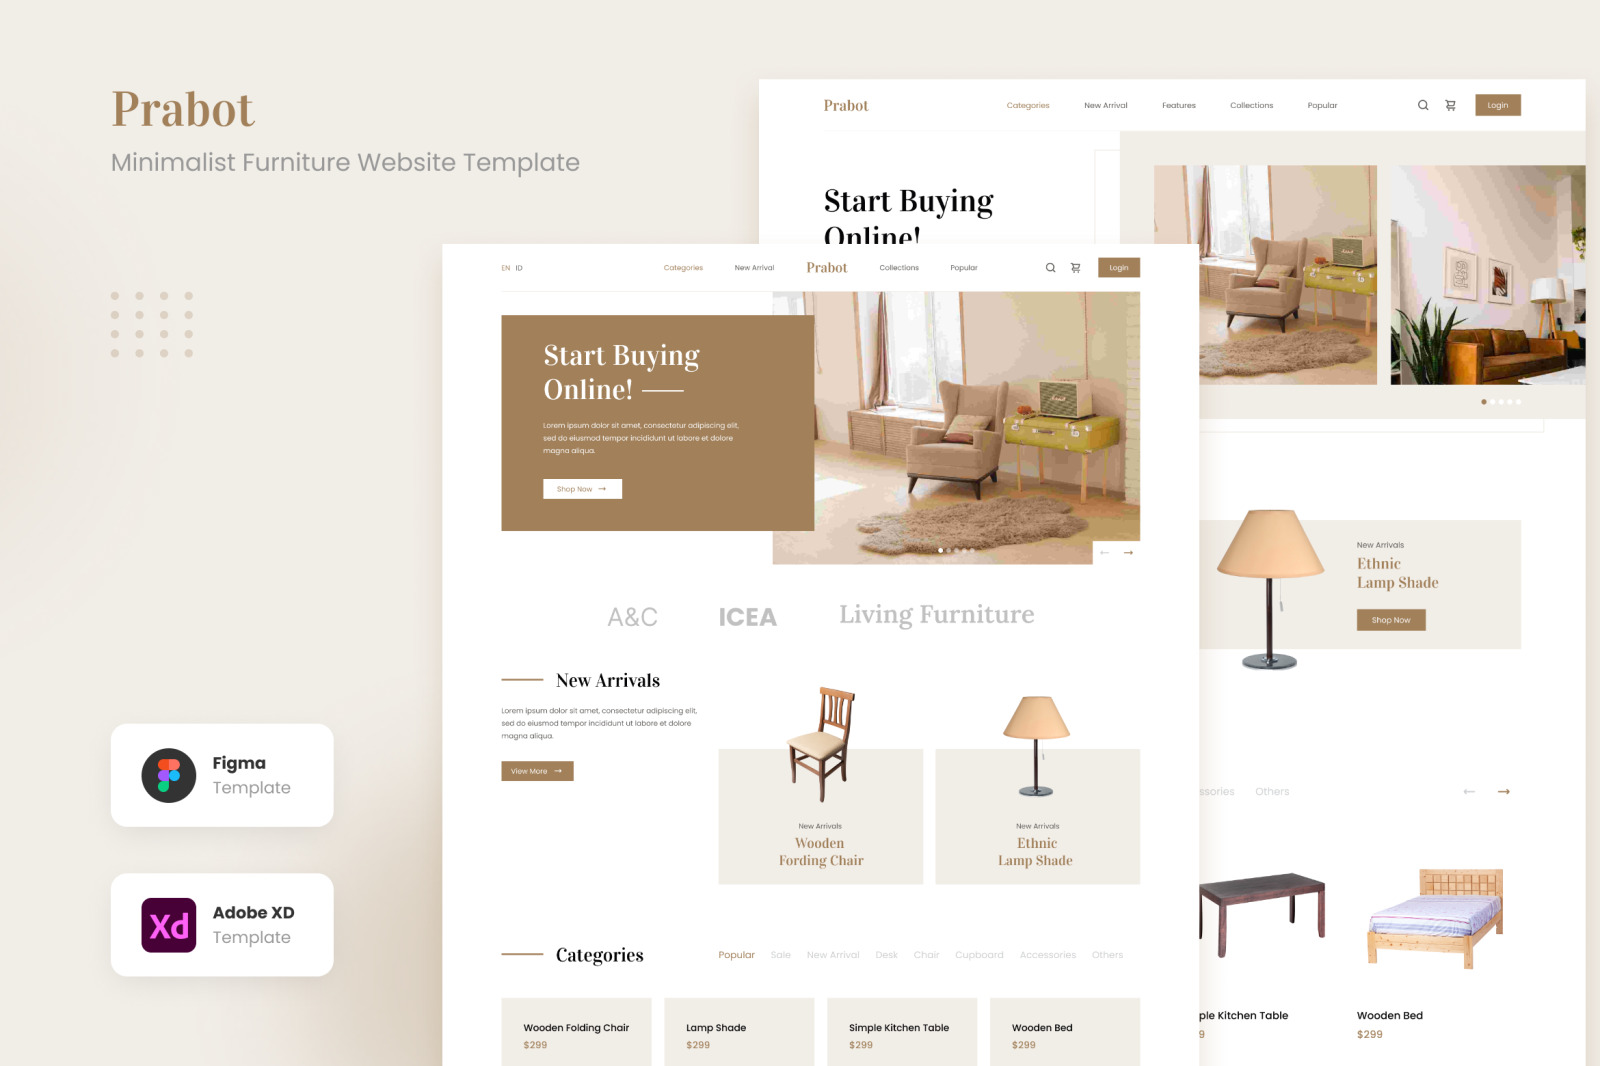 Prabot - Neat and Clean Minimalist Furniture Website Template